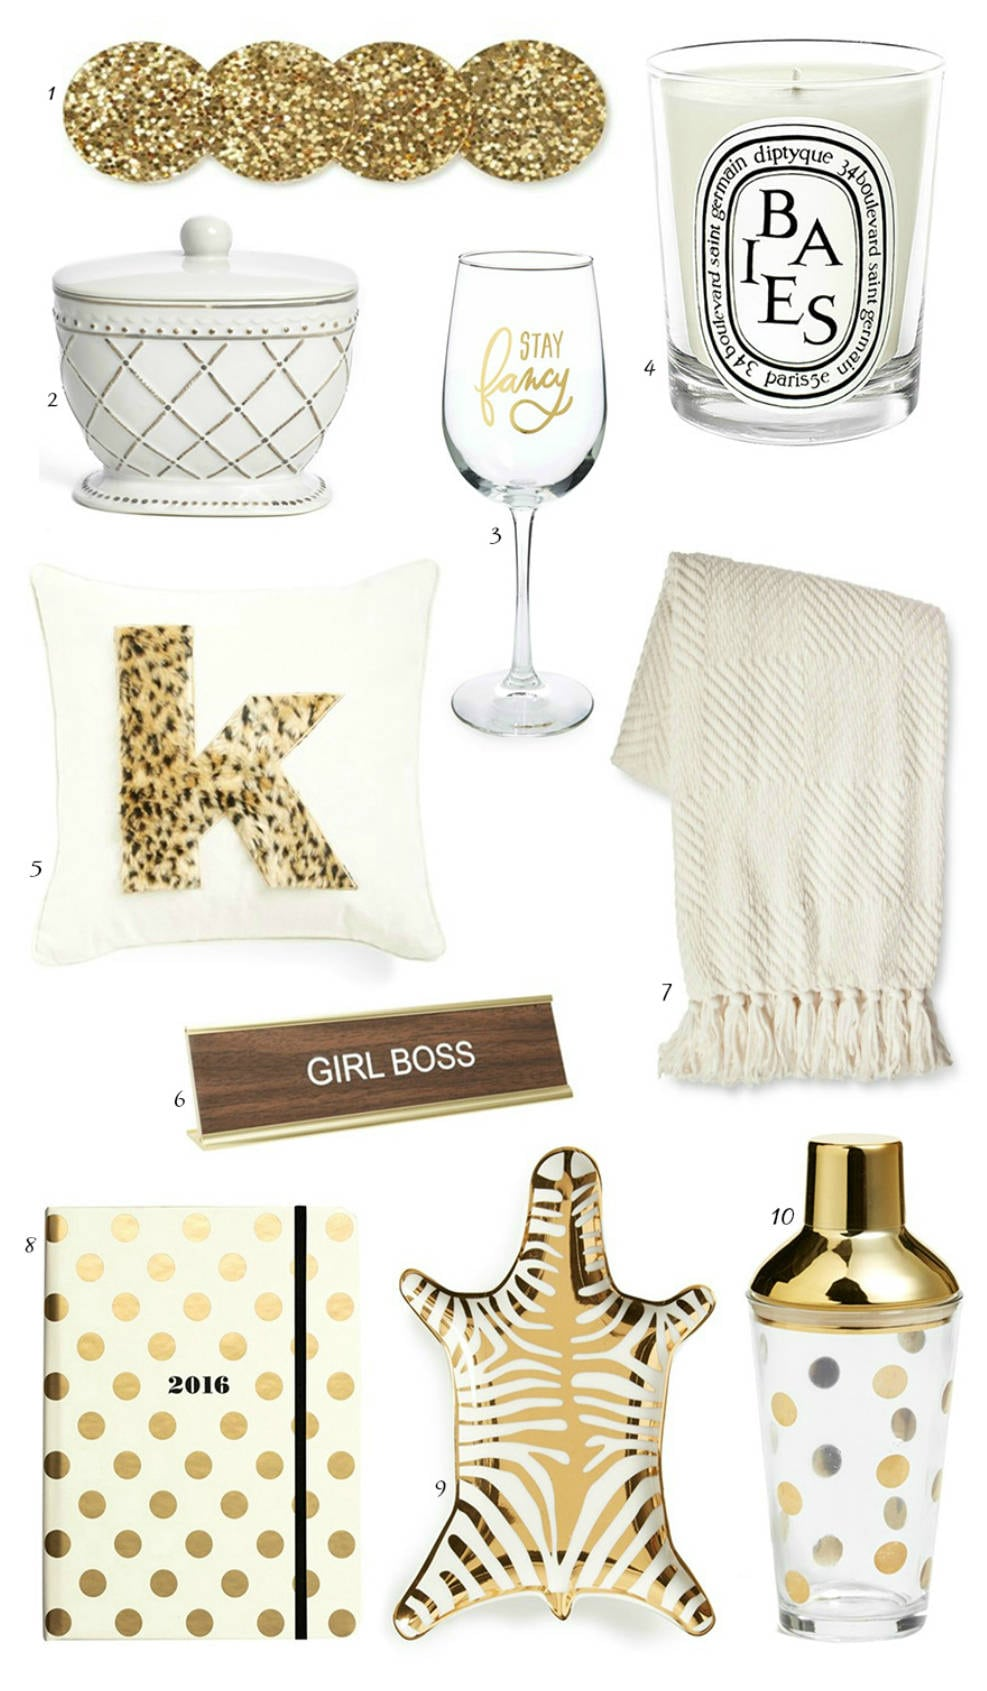 gifts for the girlboss | gifts for your sister, mom, friend, co-worker, aunt, and more! | sequins | polka dots | kate spade | diptique | gifts for the hostess | shop bop | nordstrom